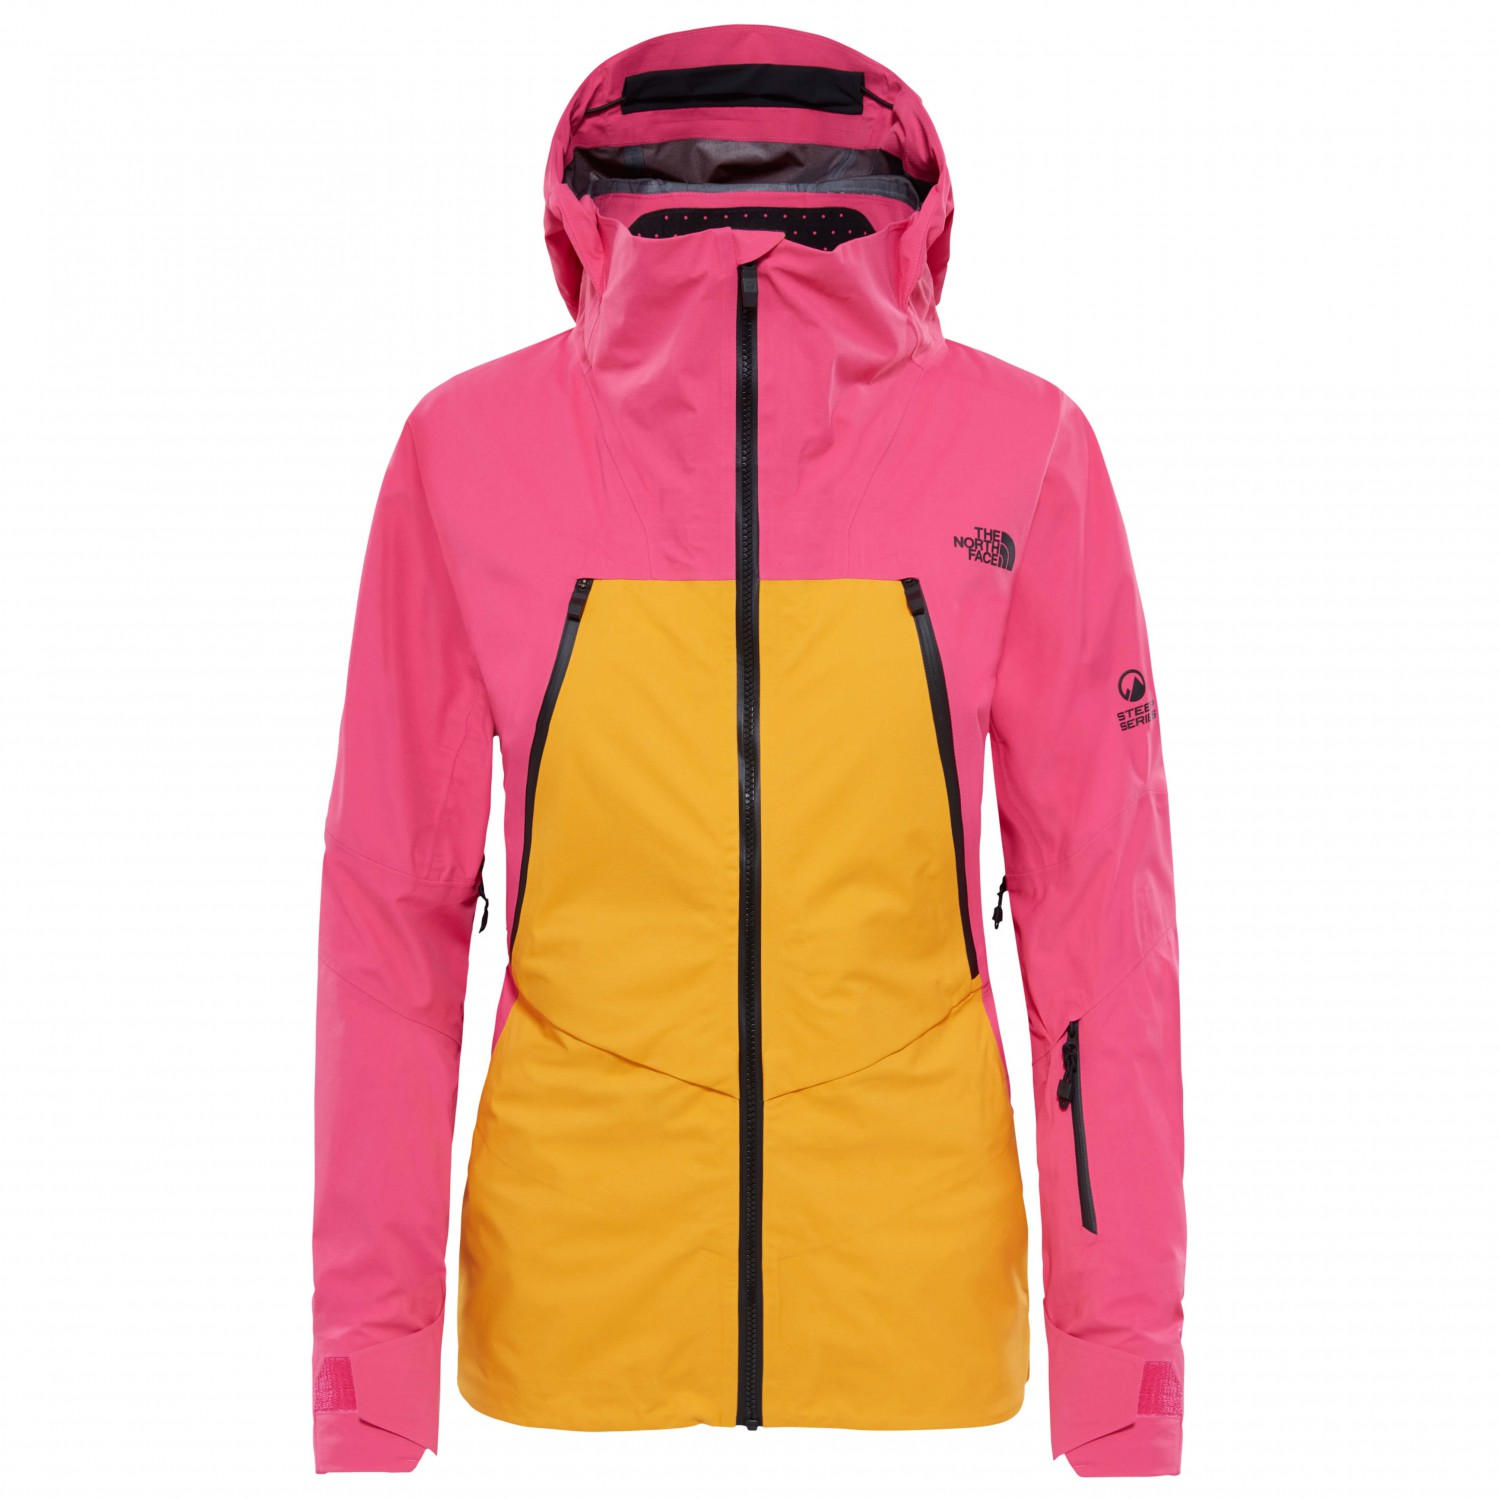 a999833acb2c ... The North Face - Women s Purist Triclimate Jacket ...